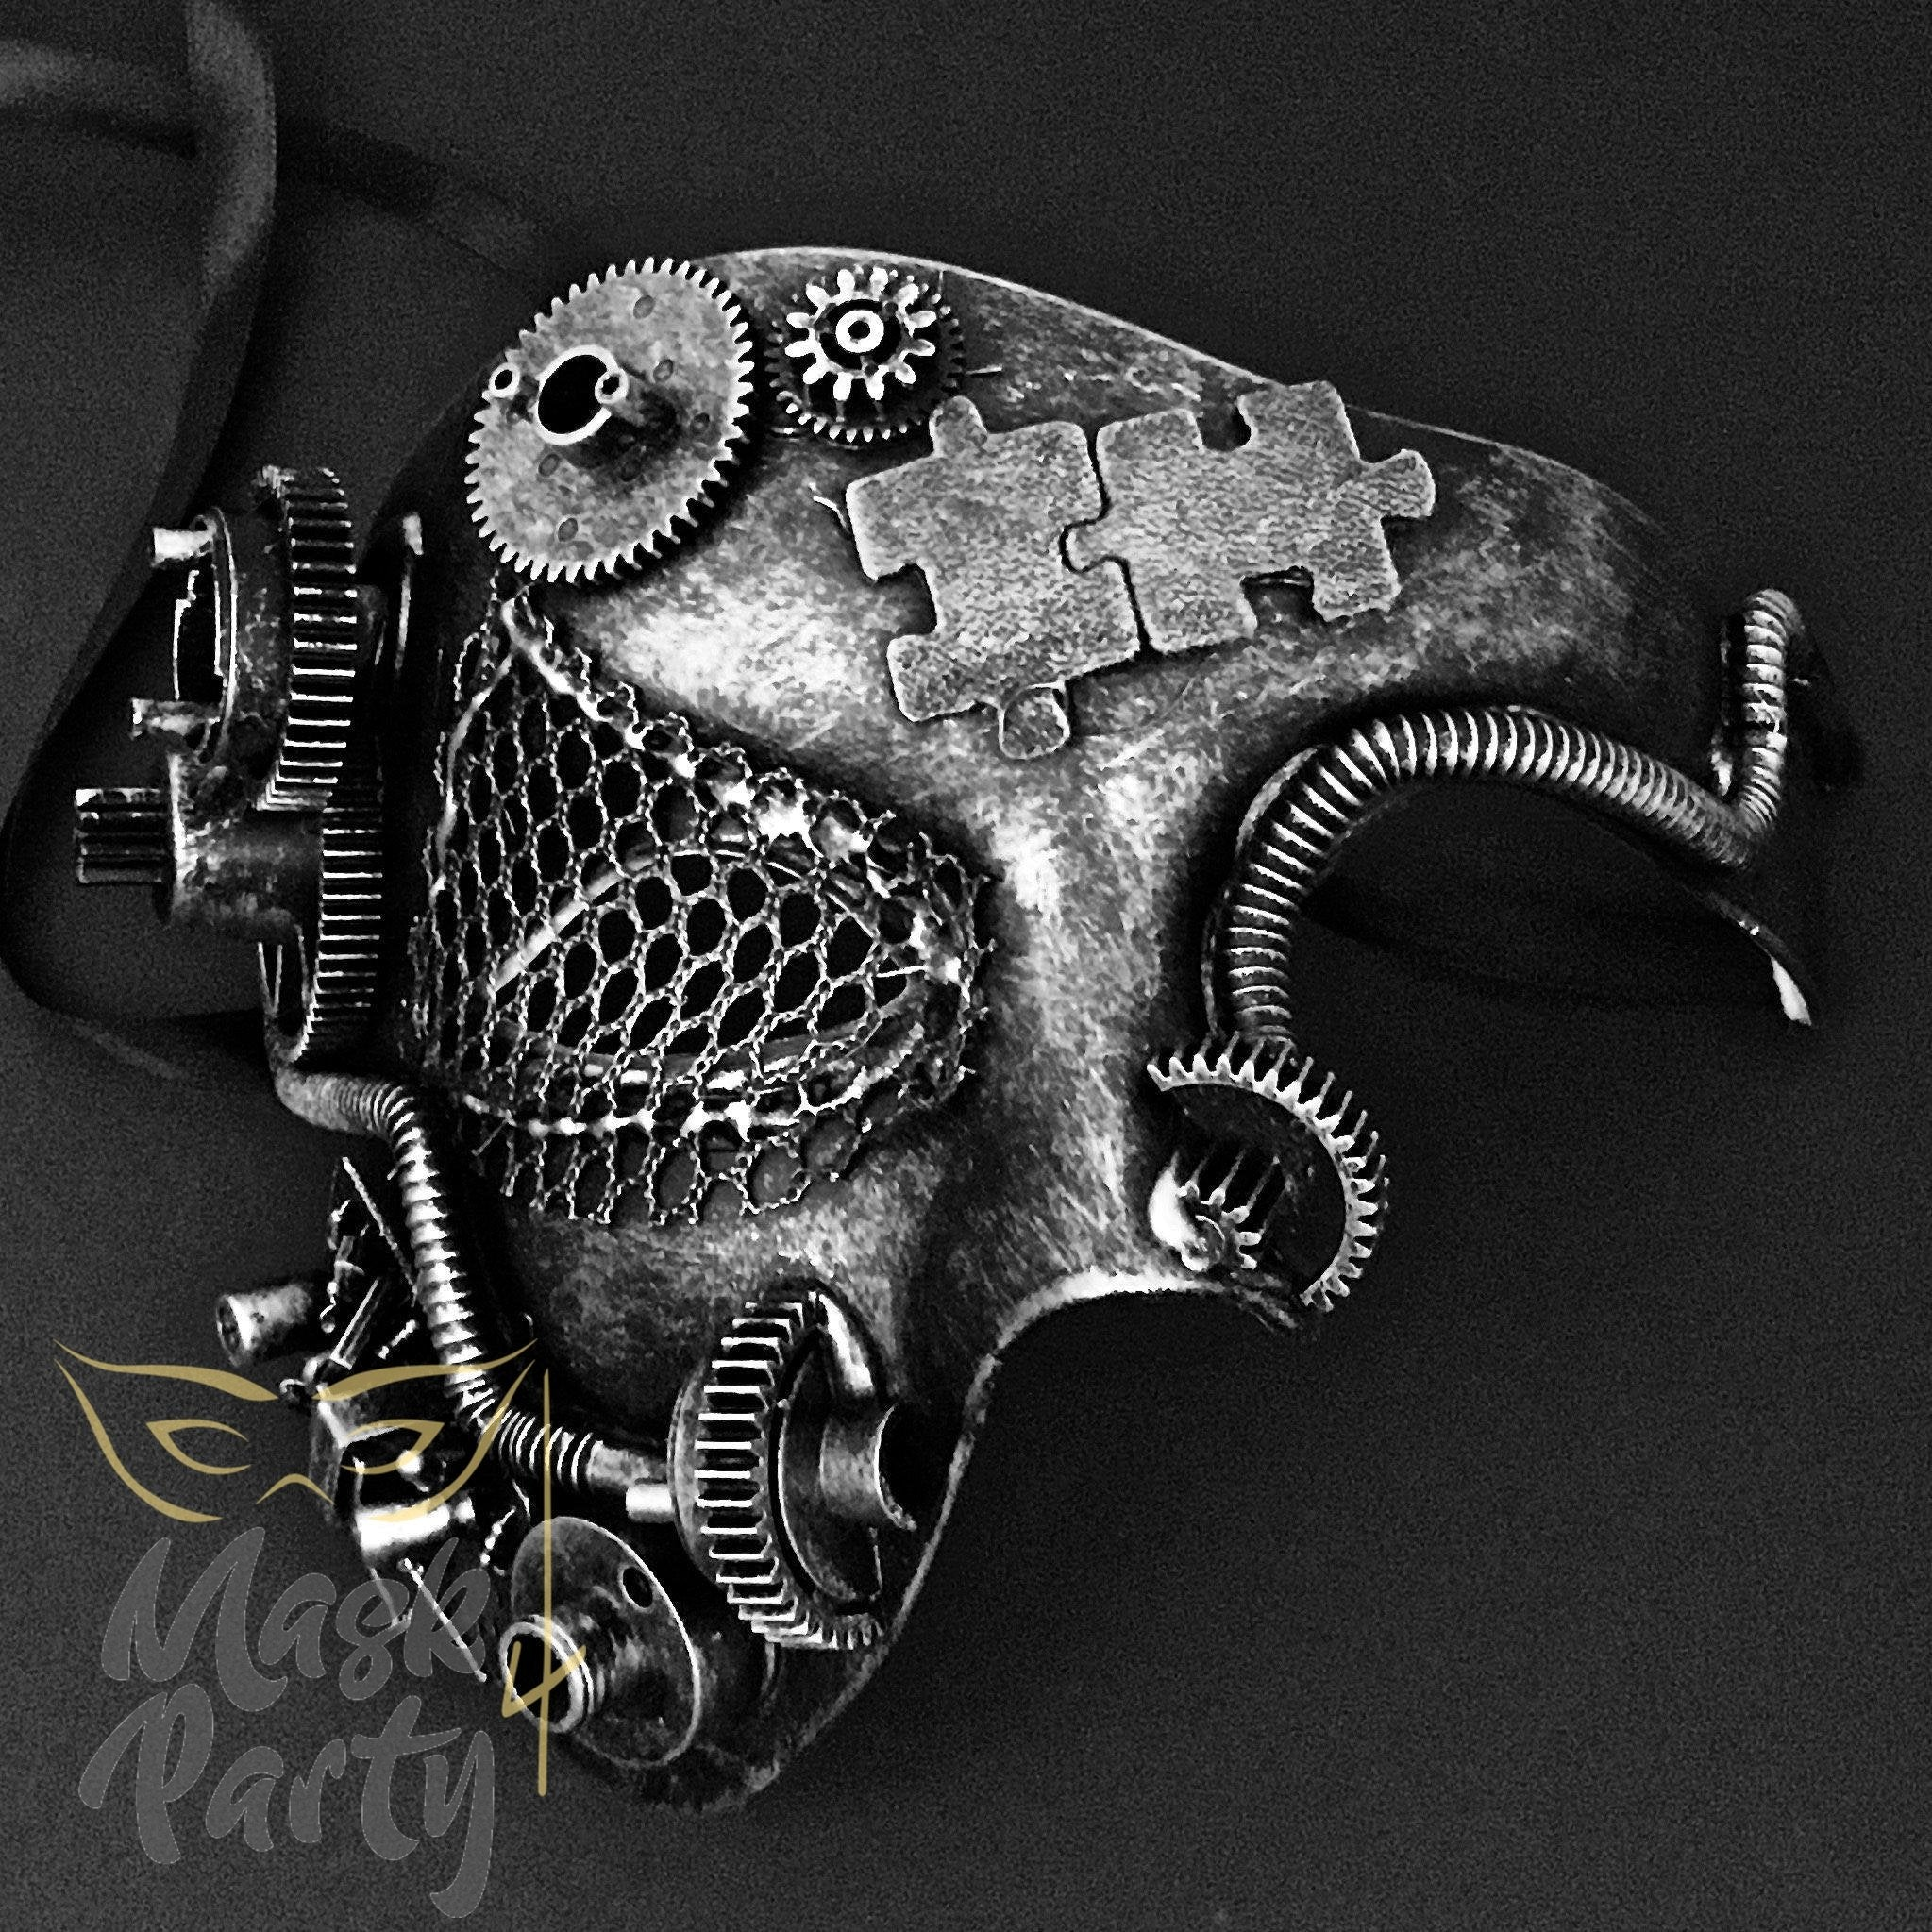 Steampunk Mask - Gear & Puzzle - Black/Silver - Mask4Party